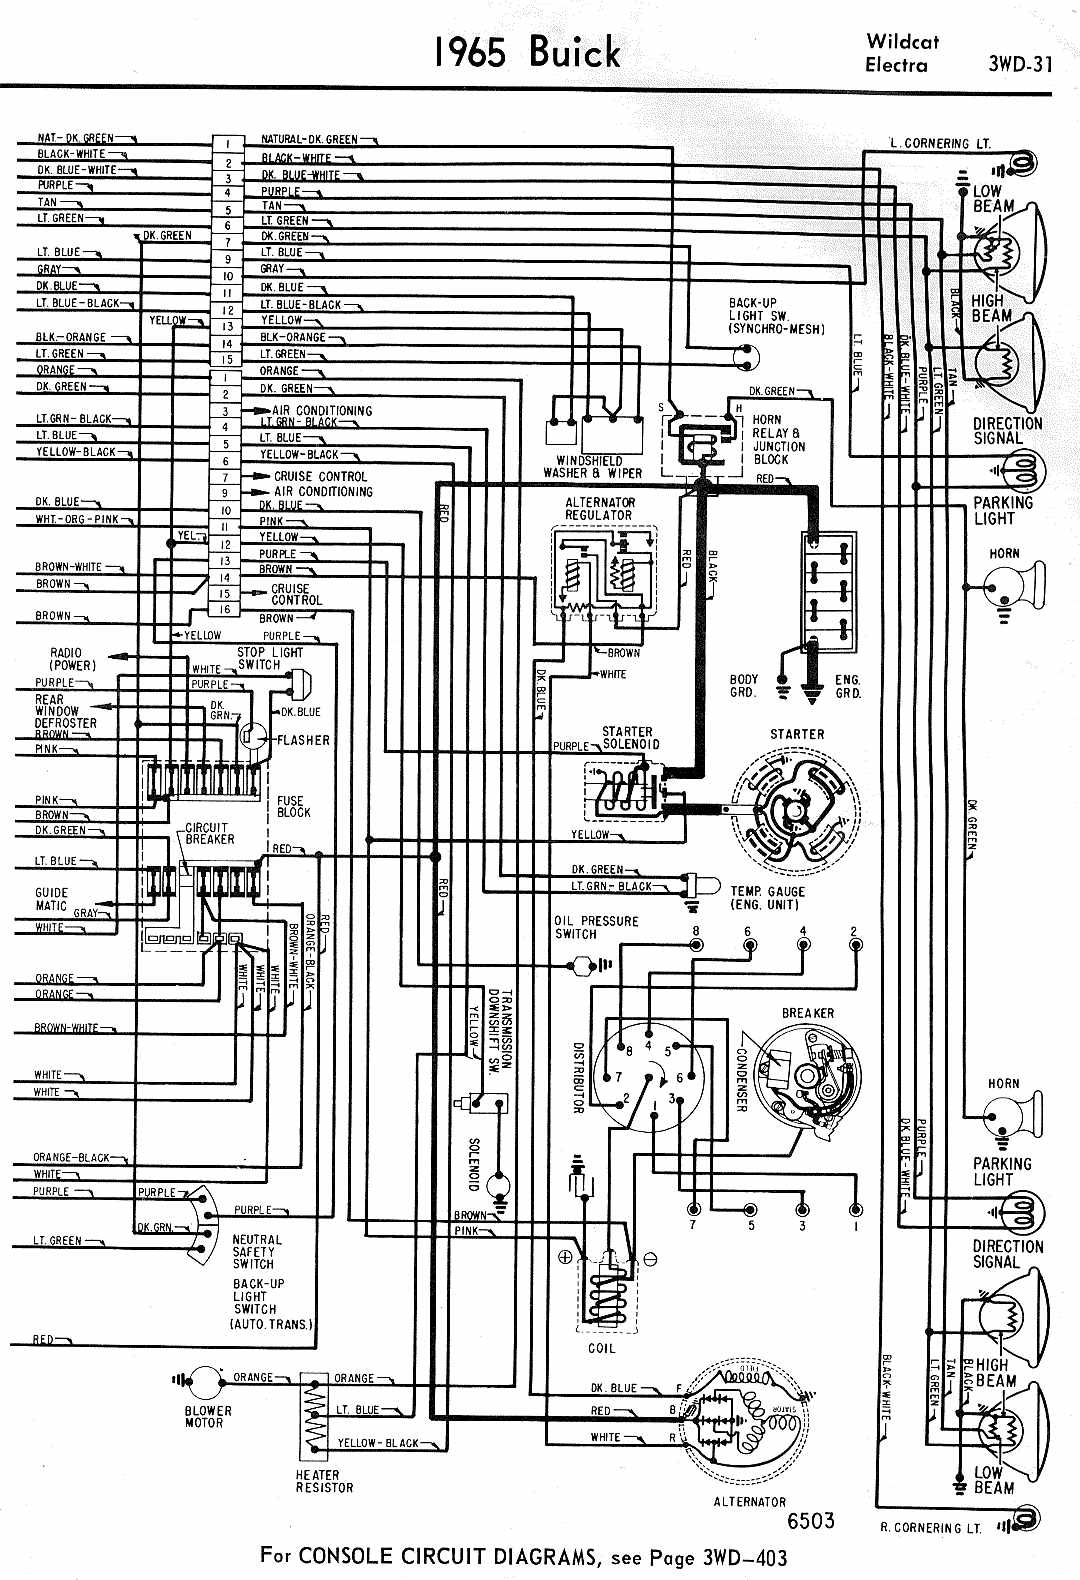 Buick Car Manuals Wiring Diagrams Pdf Fault Codes Fm Transmitter Schematic Free Download Diagram